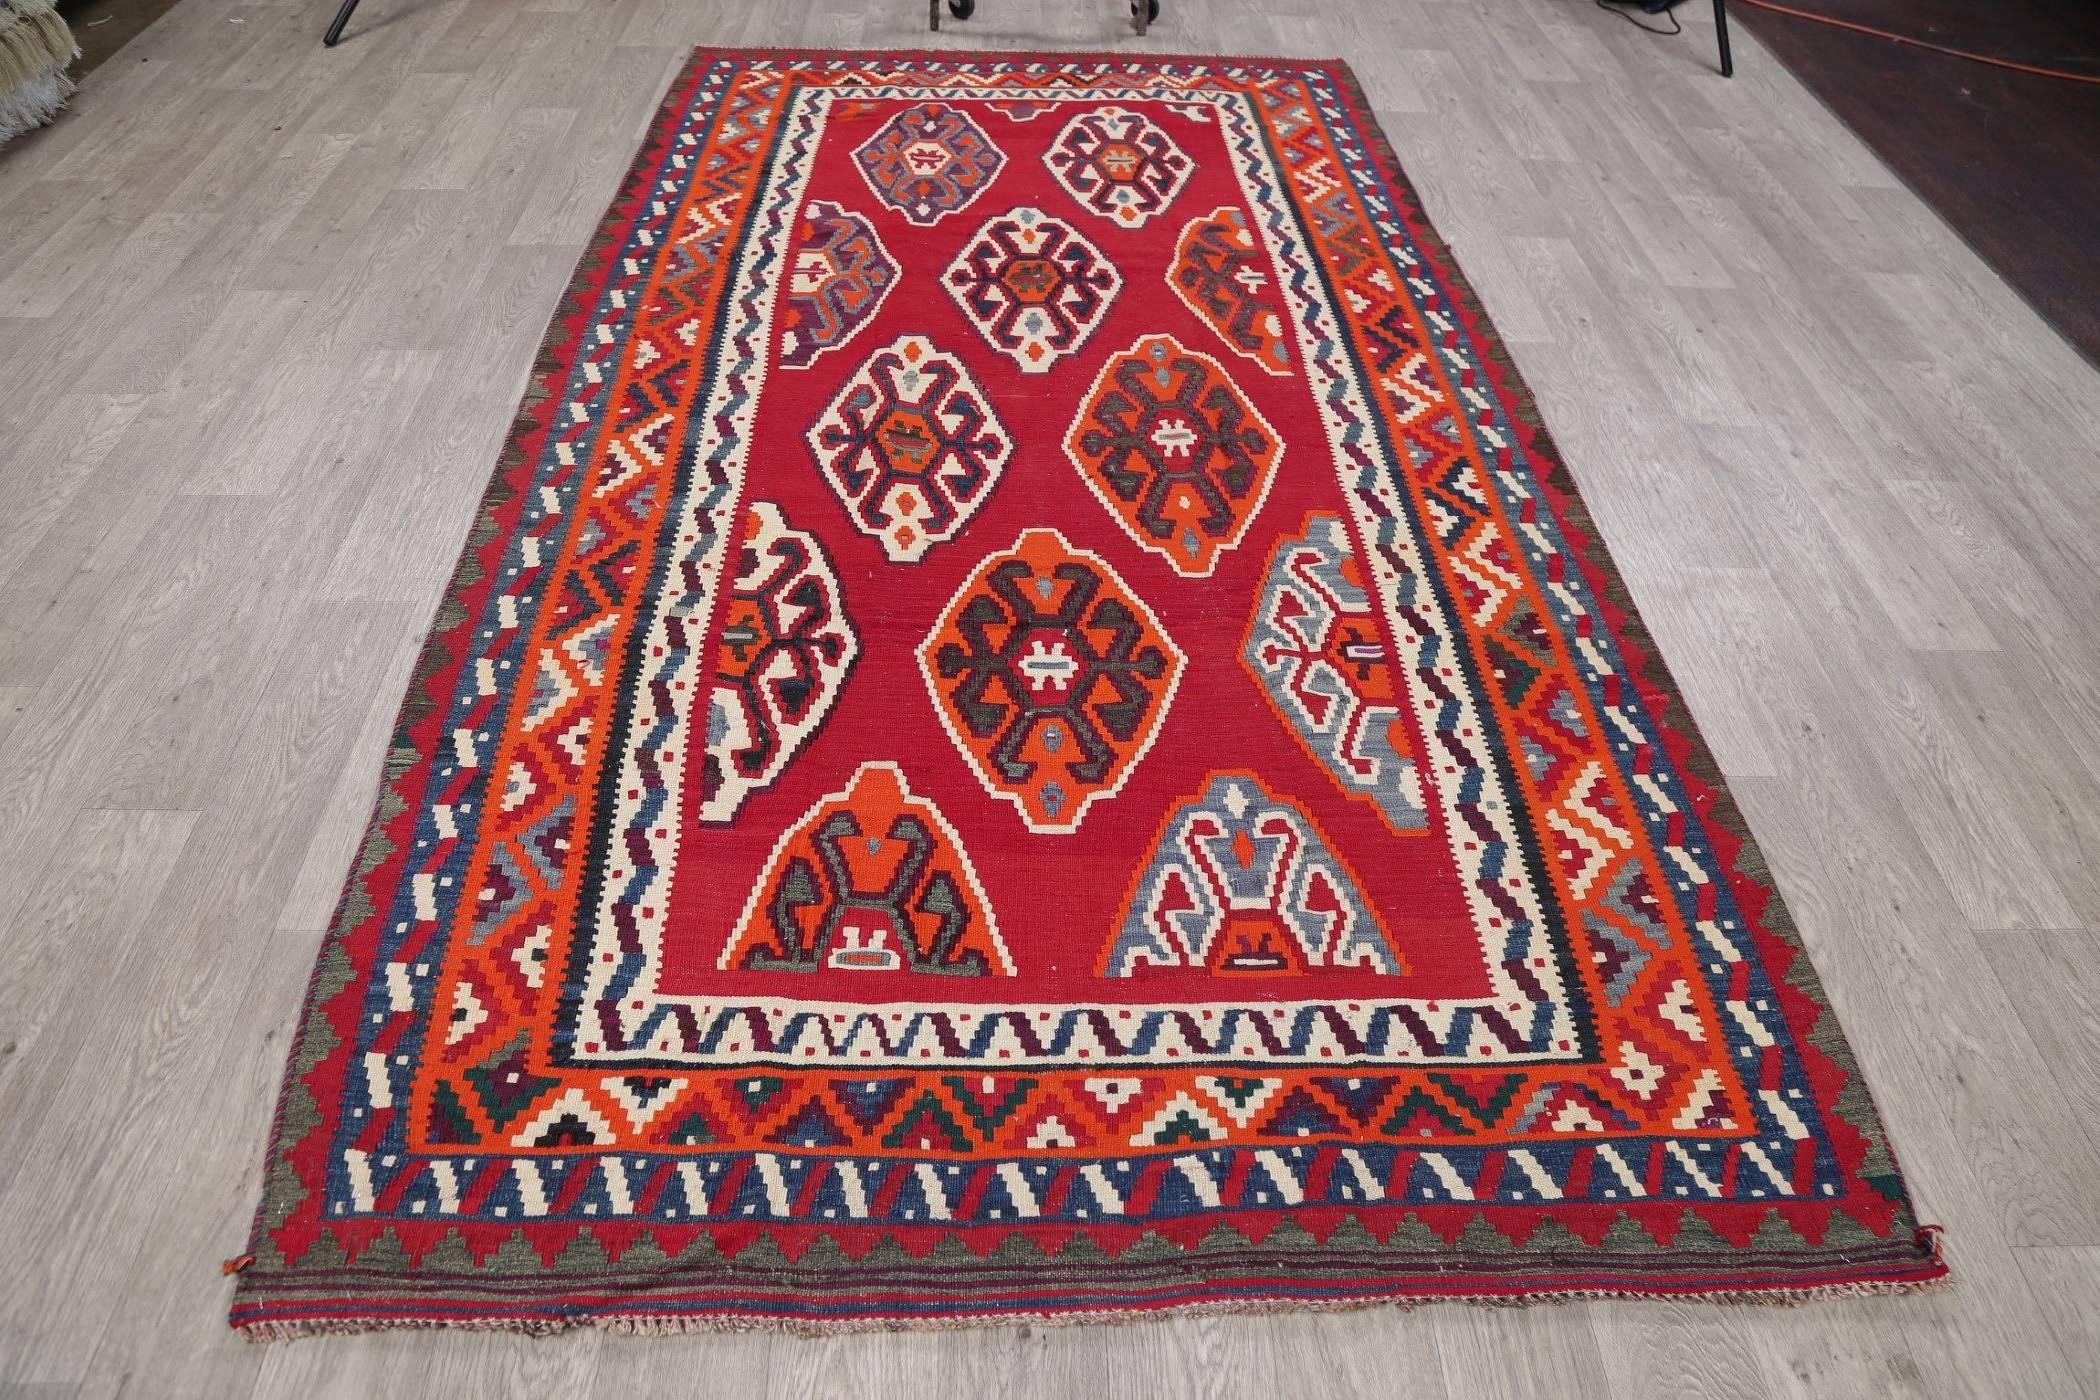 Geometric Red Kilim Persian Hand-Woven 5x10 Wool Runner Rug